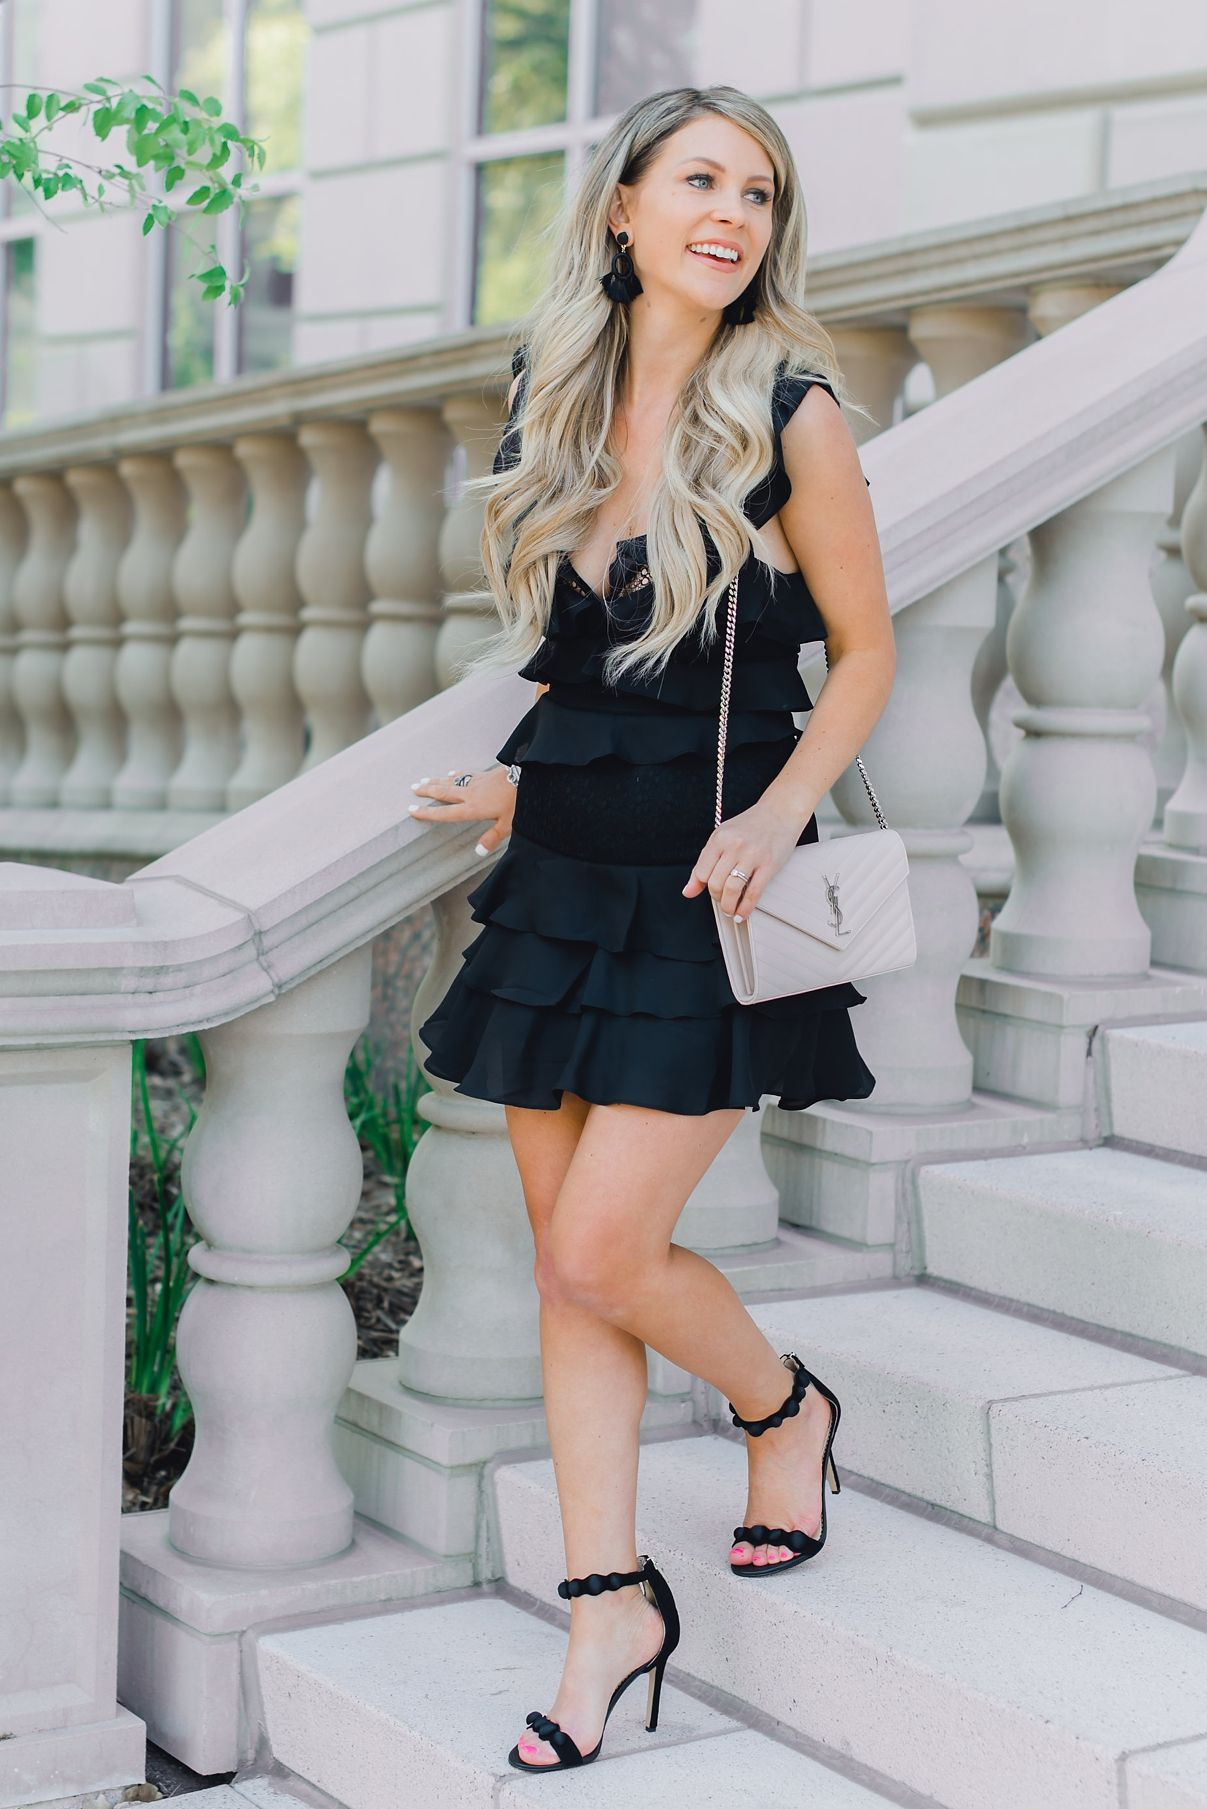 Pin On Crescent Court: RewardStyle Conference 2018 + Hotel Crescent Court + Dallas Texas #RSTHECON Ashlee Nichols